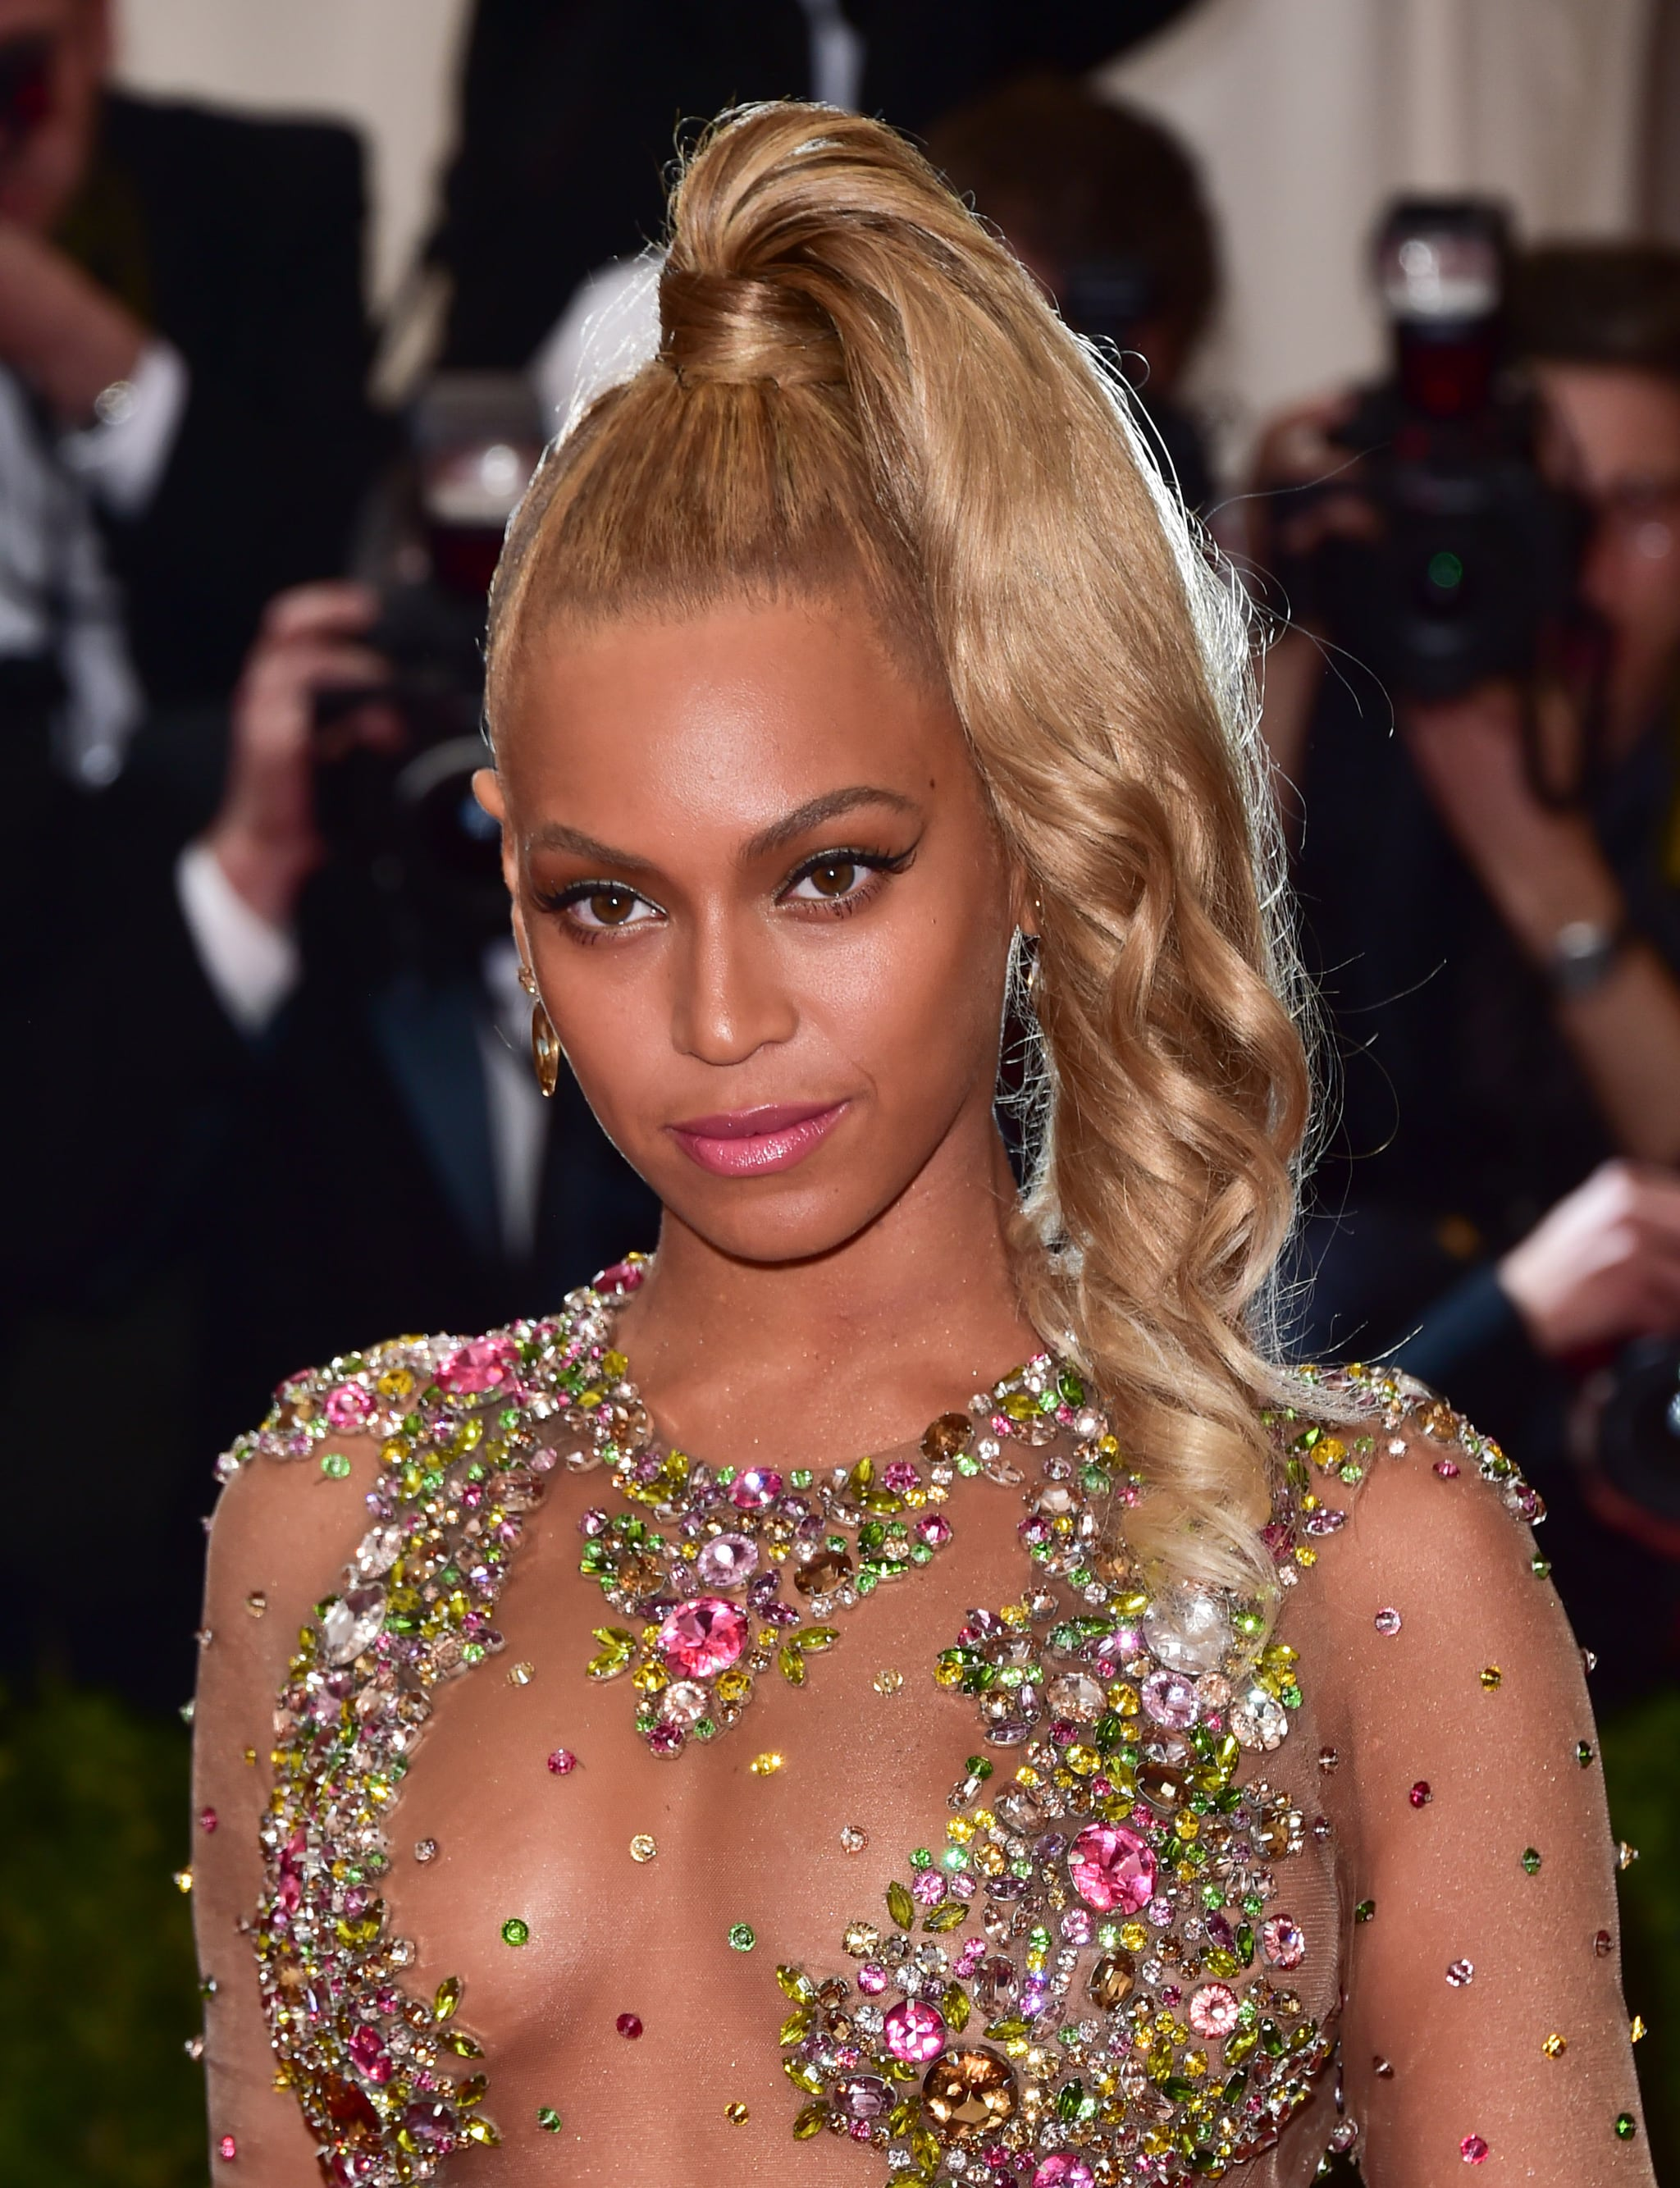 NEW YORK, NY - MAY 04:  Beyonce attends the 'China: Through The Looking Glass' Costume Institute Benefit Gala at Metropolitan Museum of Art on May 4, 2015 in New York City.  (Photo by George Pimentel/WireImage)